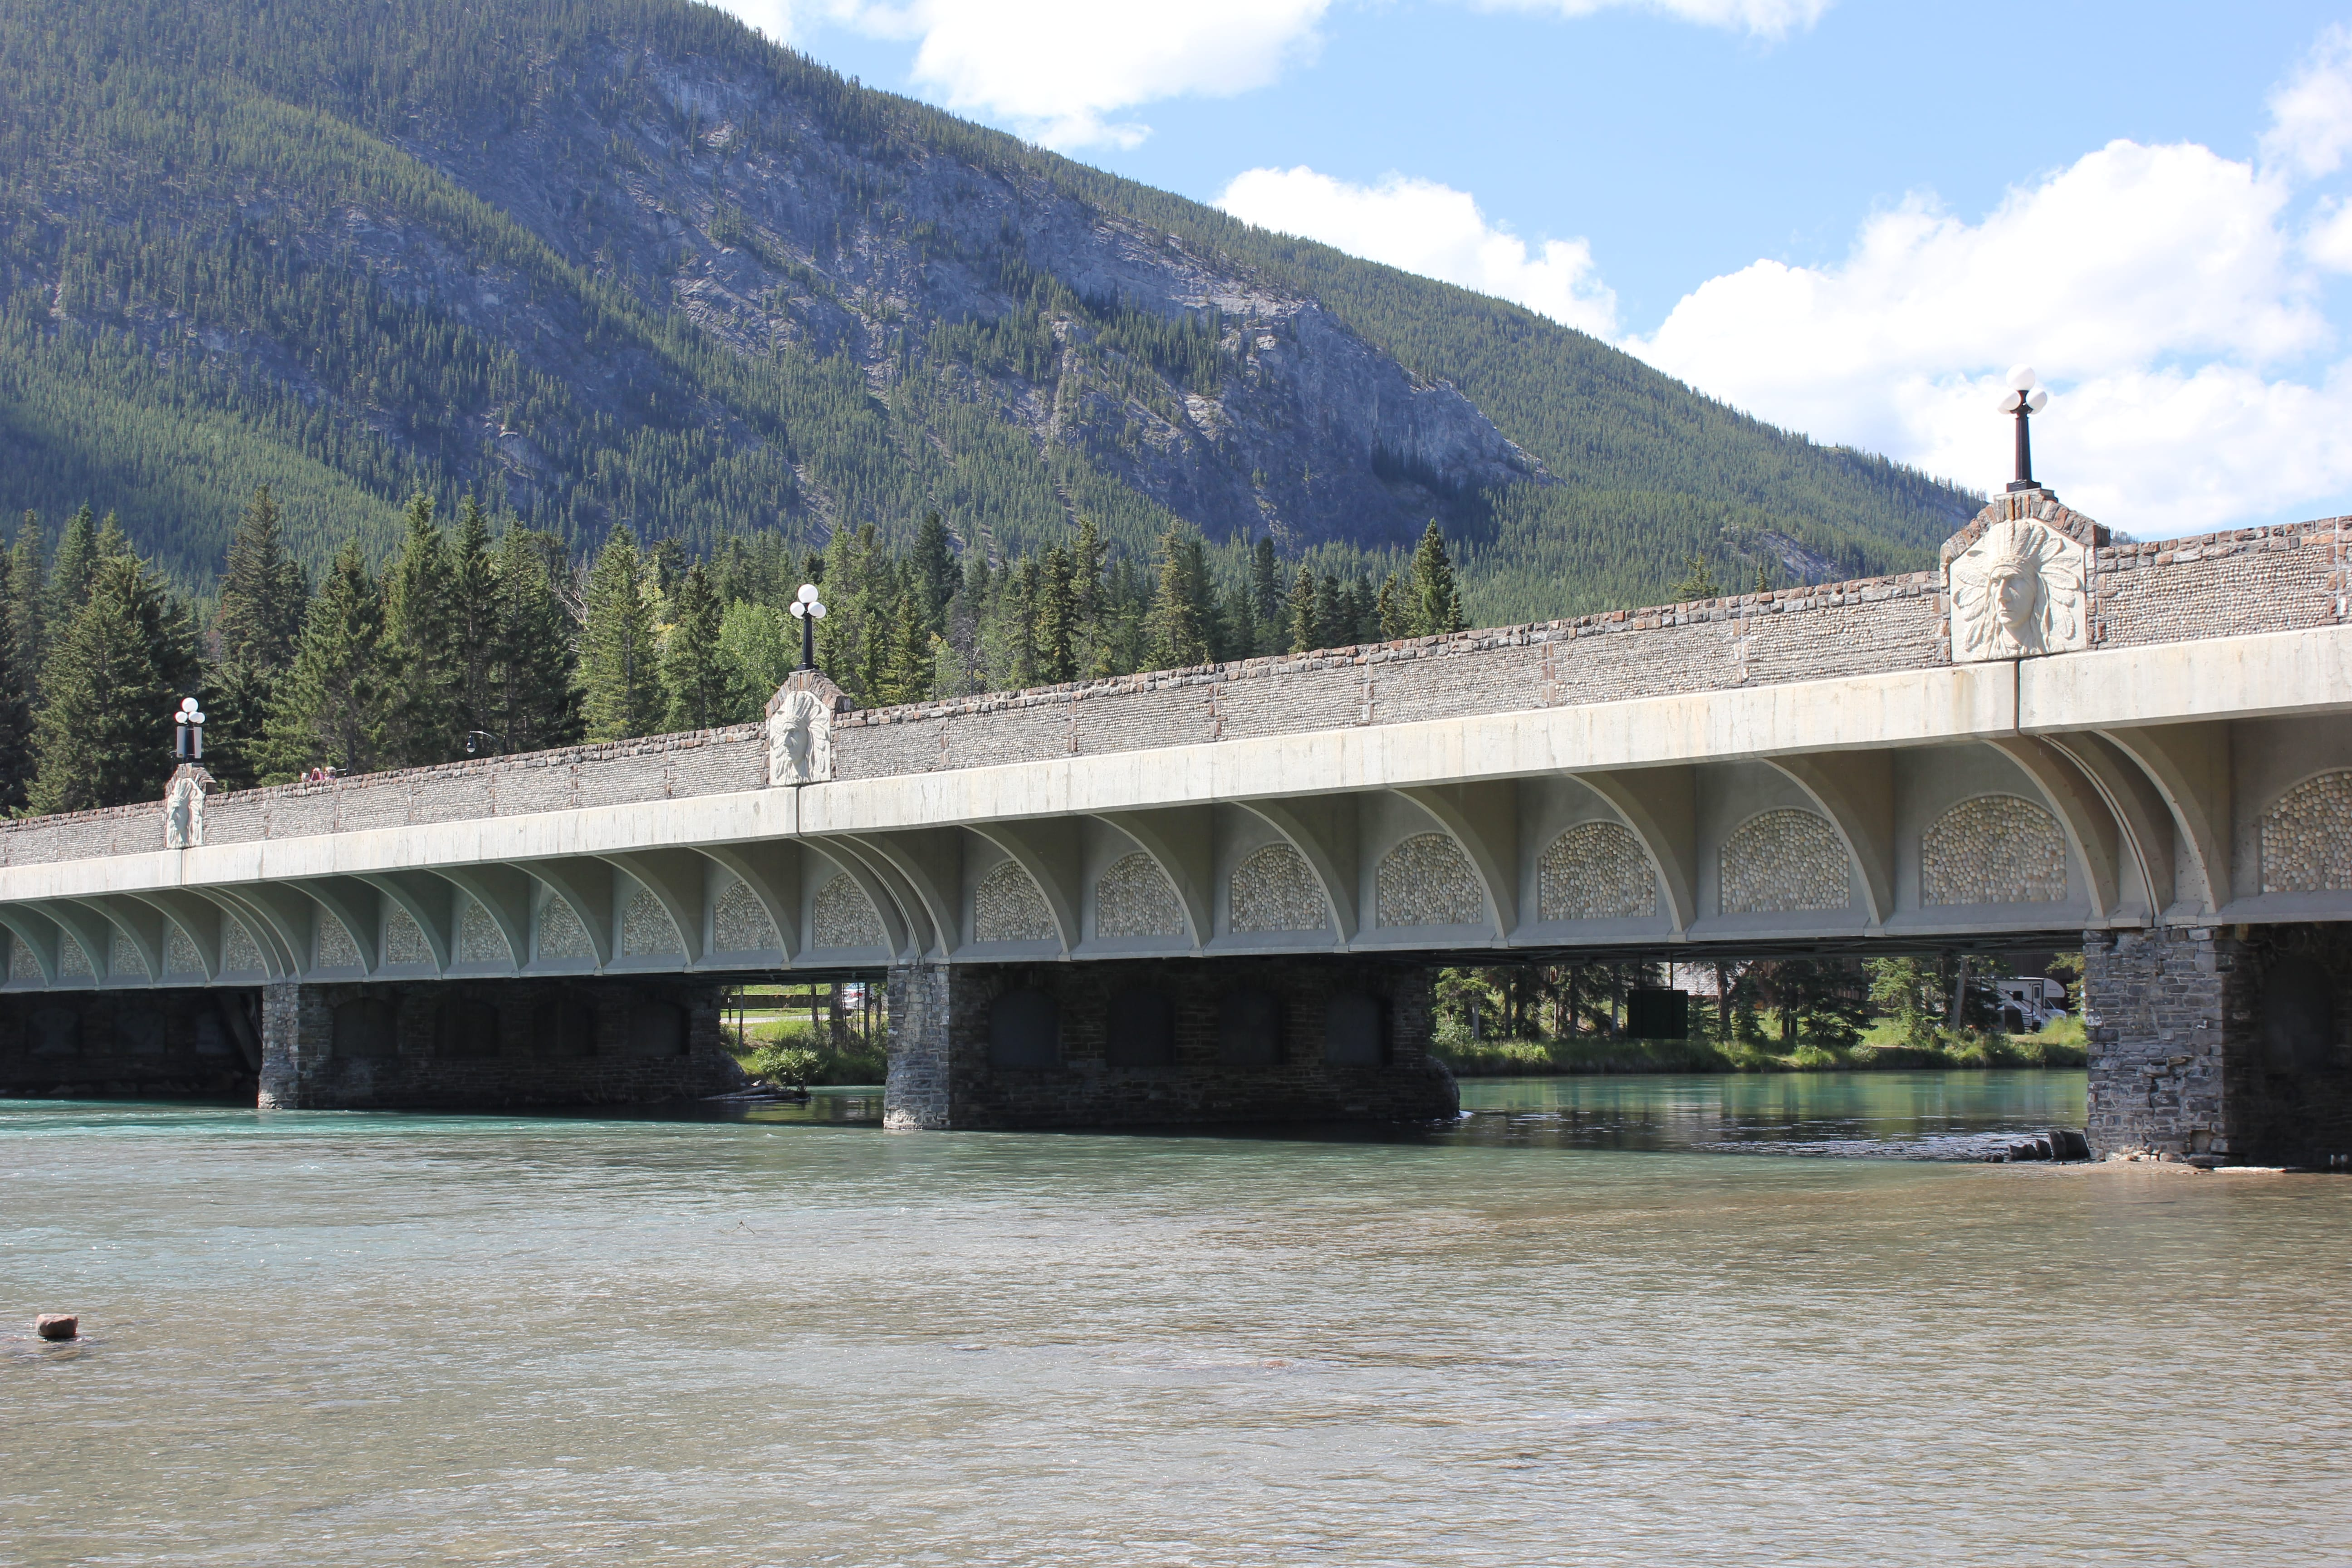 Bow River Bridge now